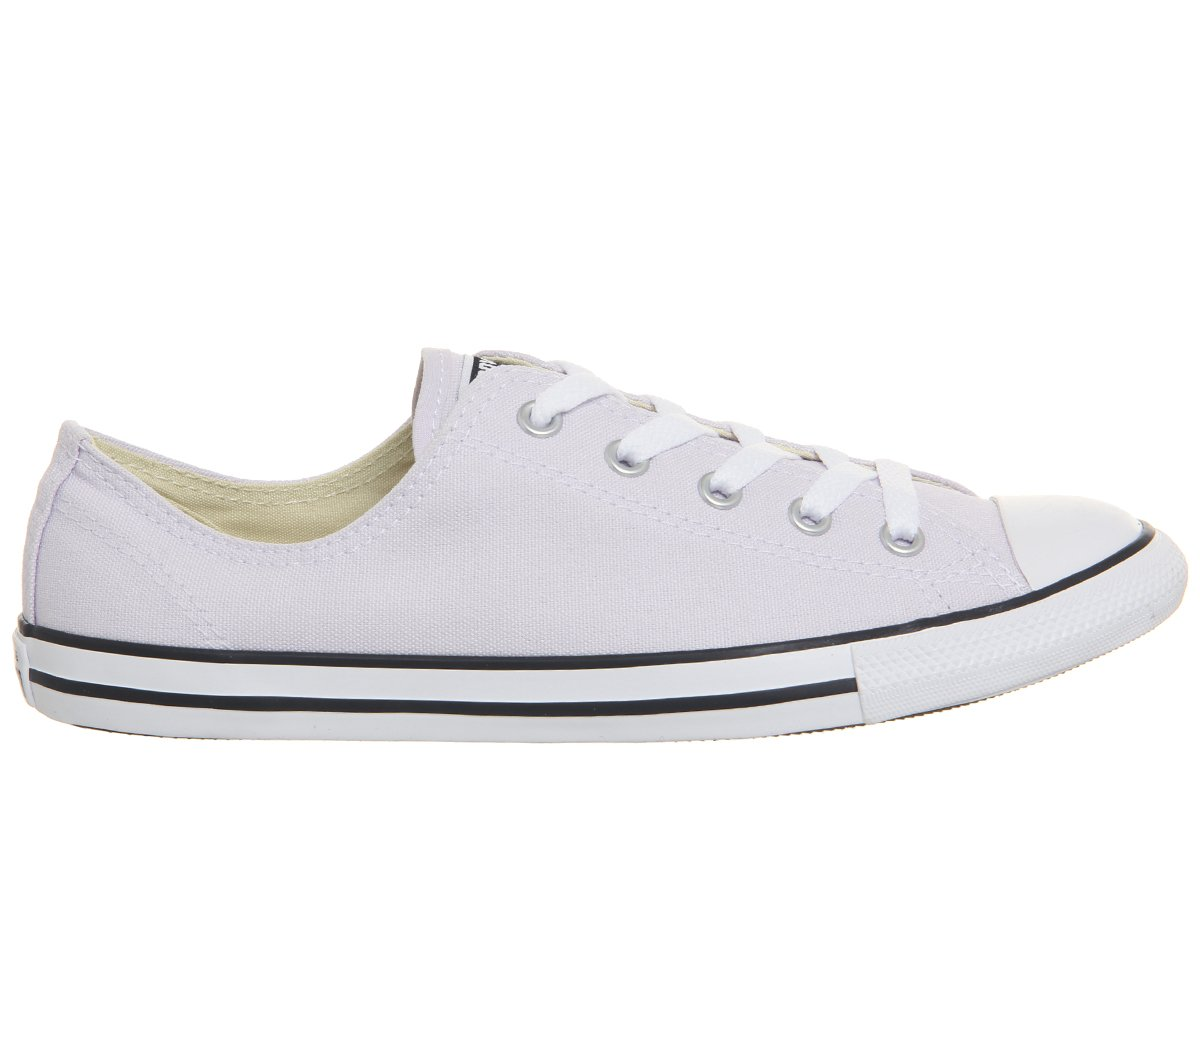 Converse Damen Chuck Taylor CTAS Dainty OX Canvas Fitnessschuhe  35/36 EU|Pink (Barely Grape/White/Black 551)